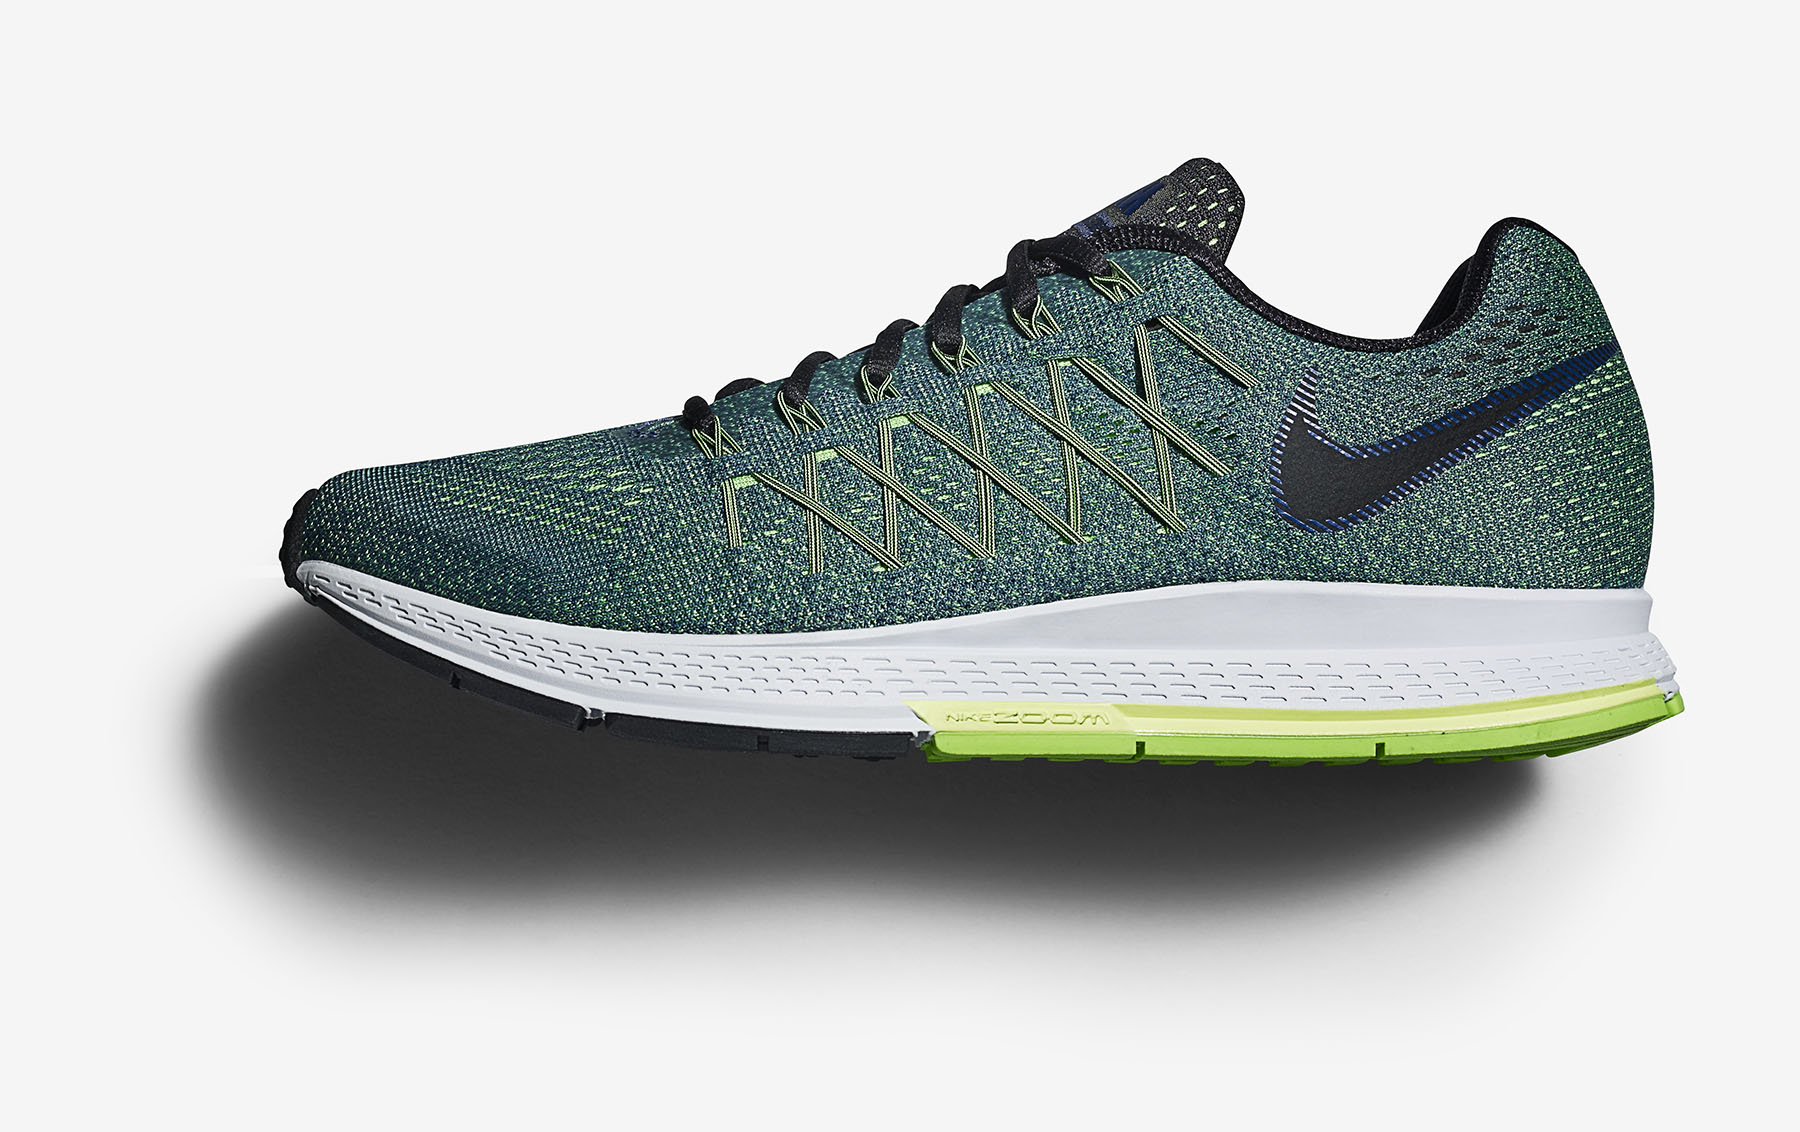 FA15_GDC_GEAR_UP_STILL_LIFE_MENS_CROSS_COUNTRY_749340-403_AIR_ZOOM_PEGASUS_32_020 copy.jpg